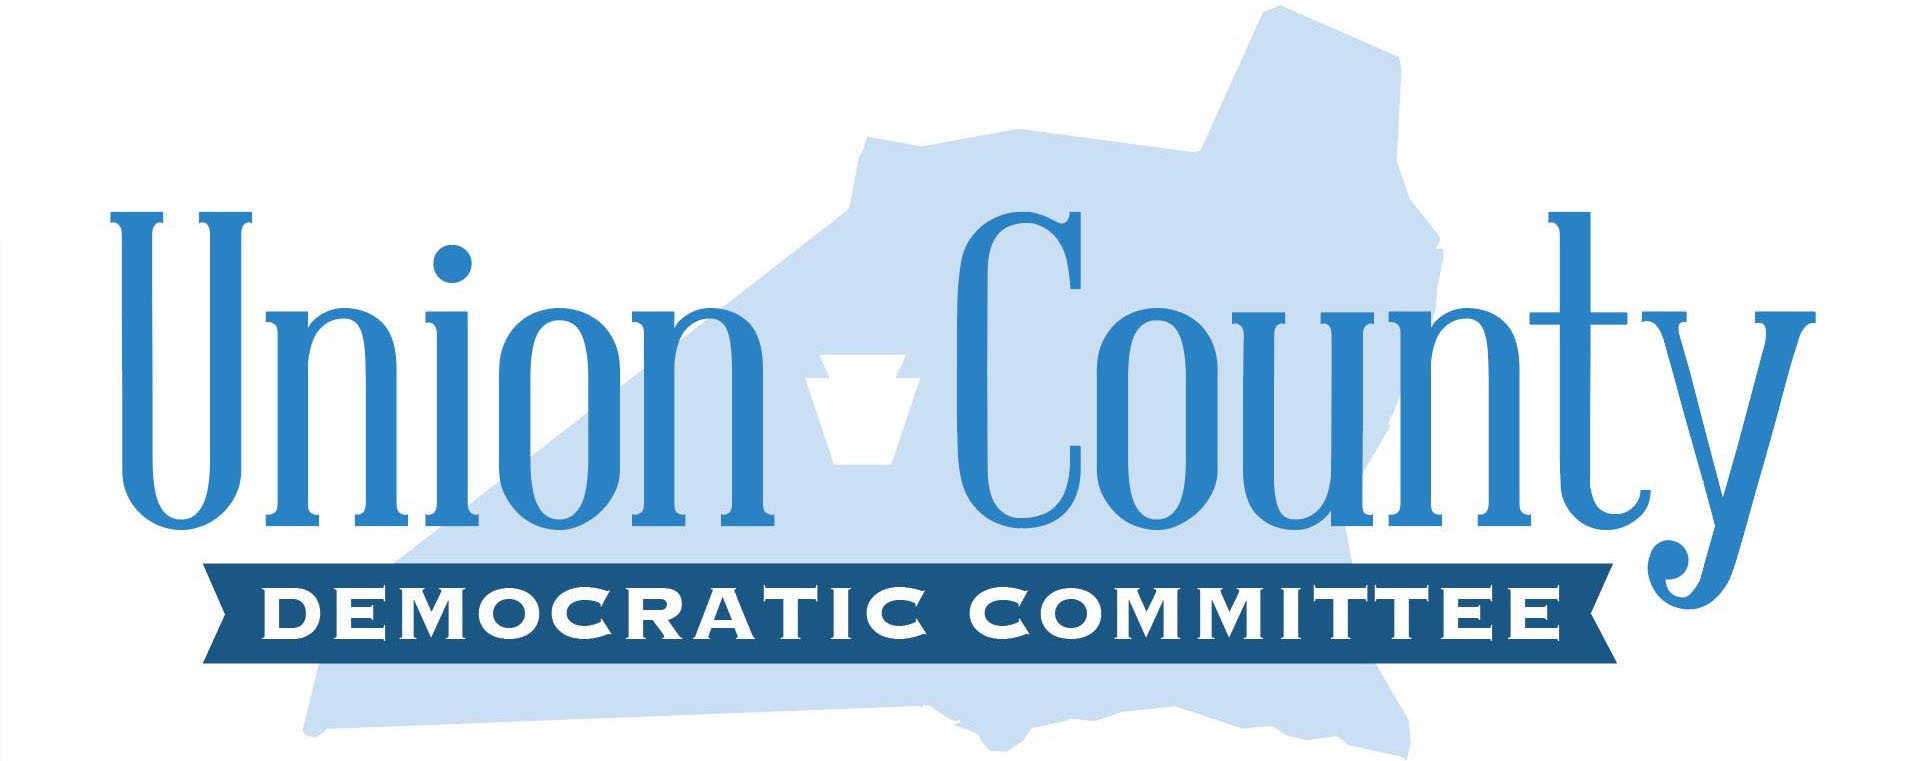 Union County Democratic Committee